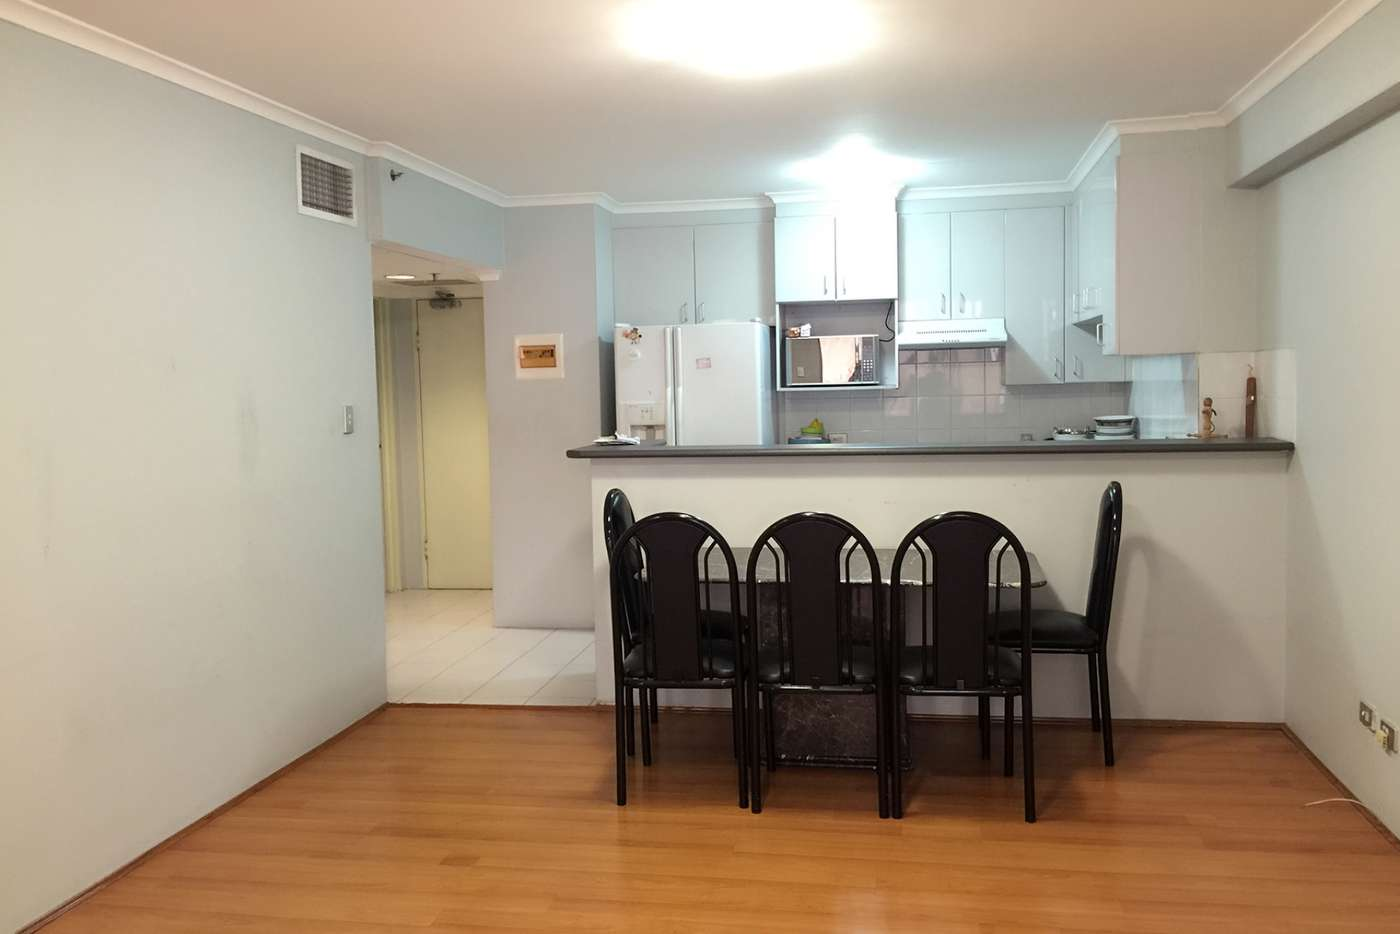 Main view of Homely apartment listing, 398 Pitt Street, Sydney NSW 2000